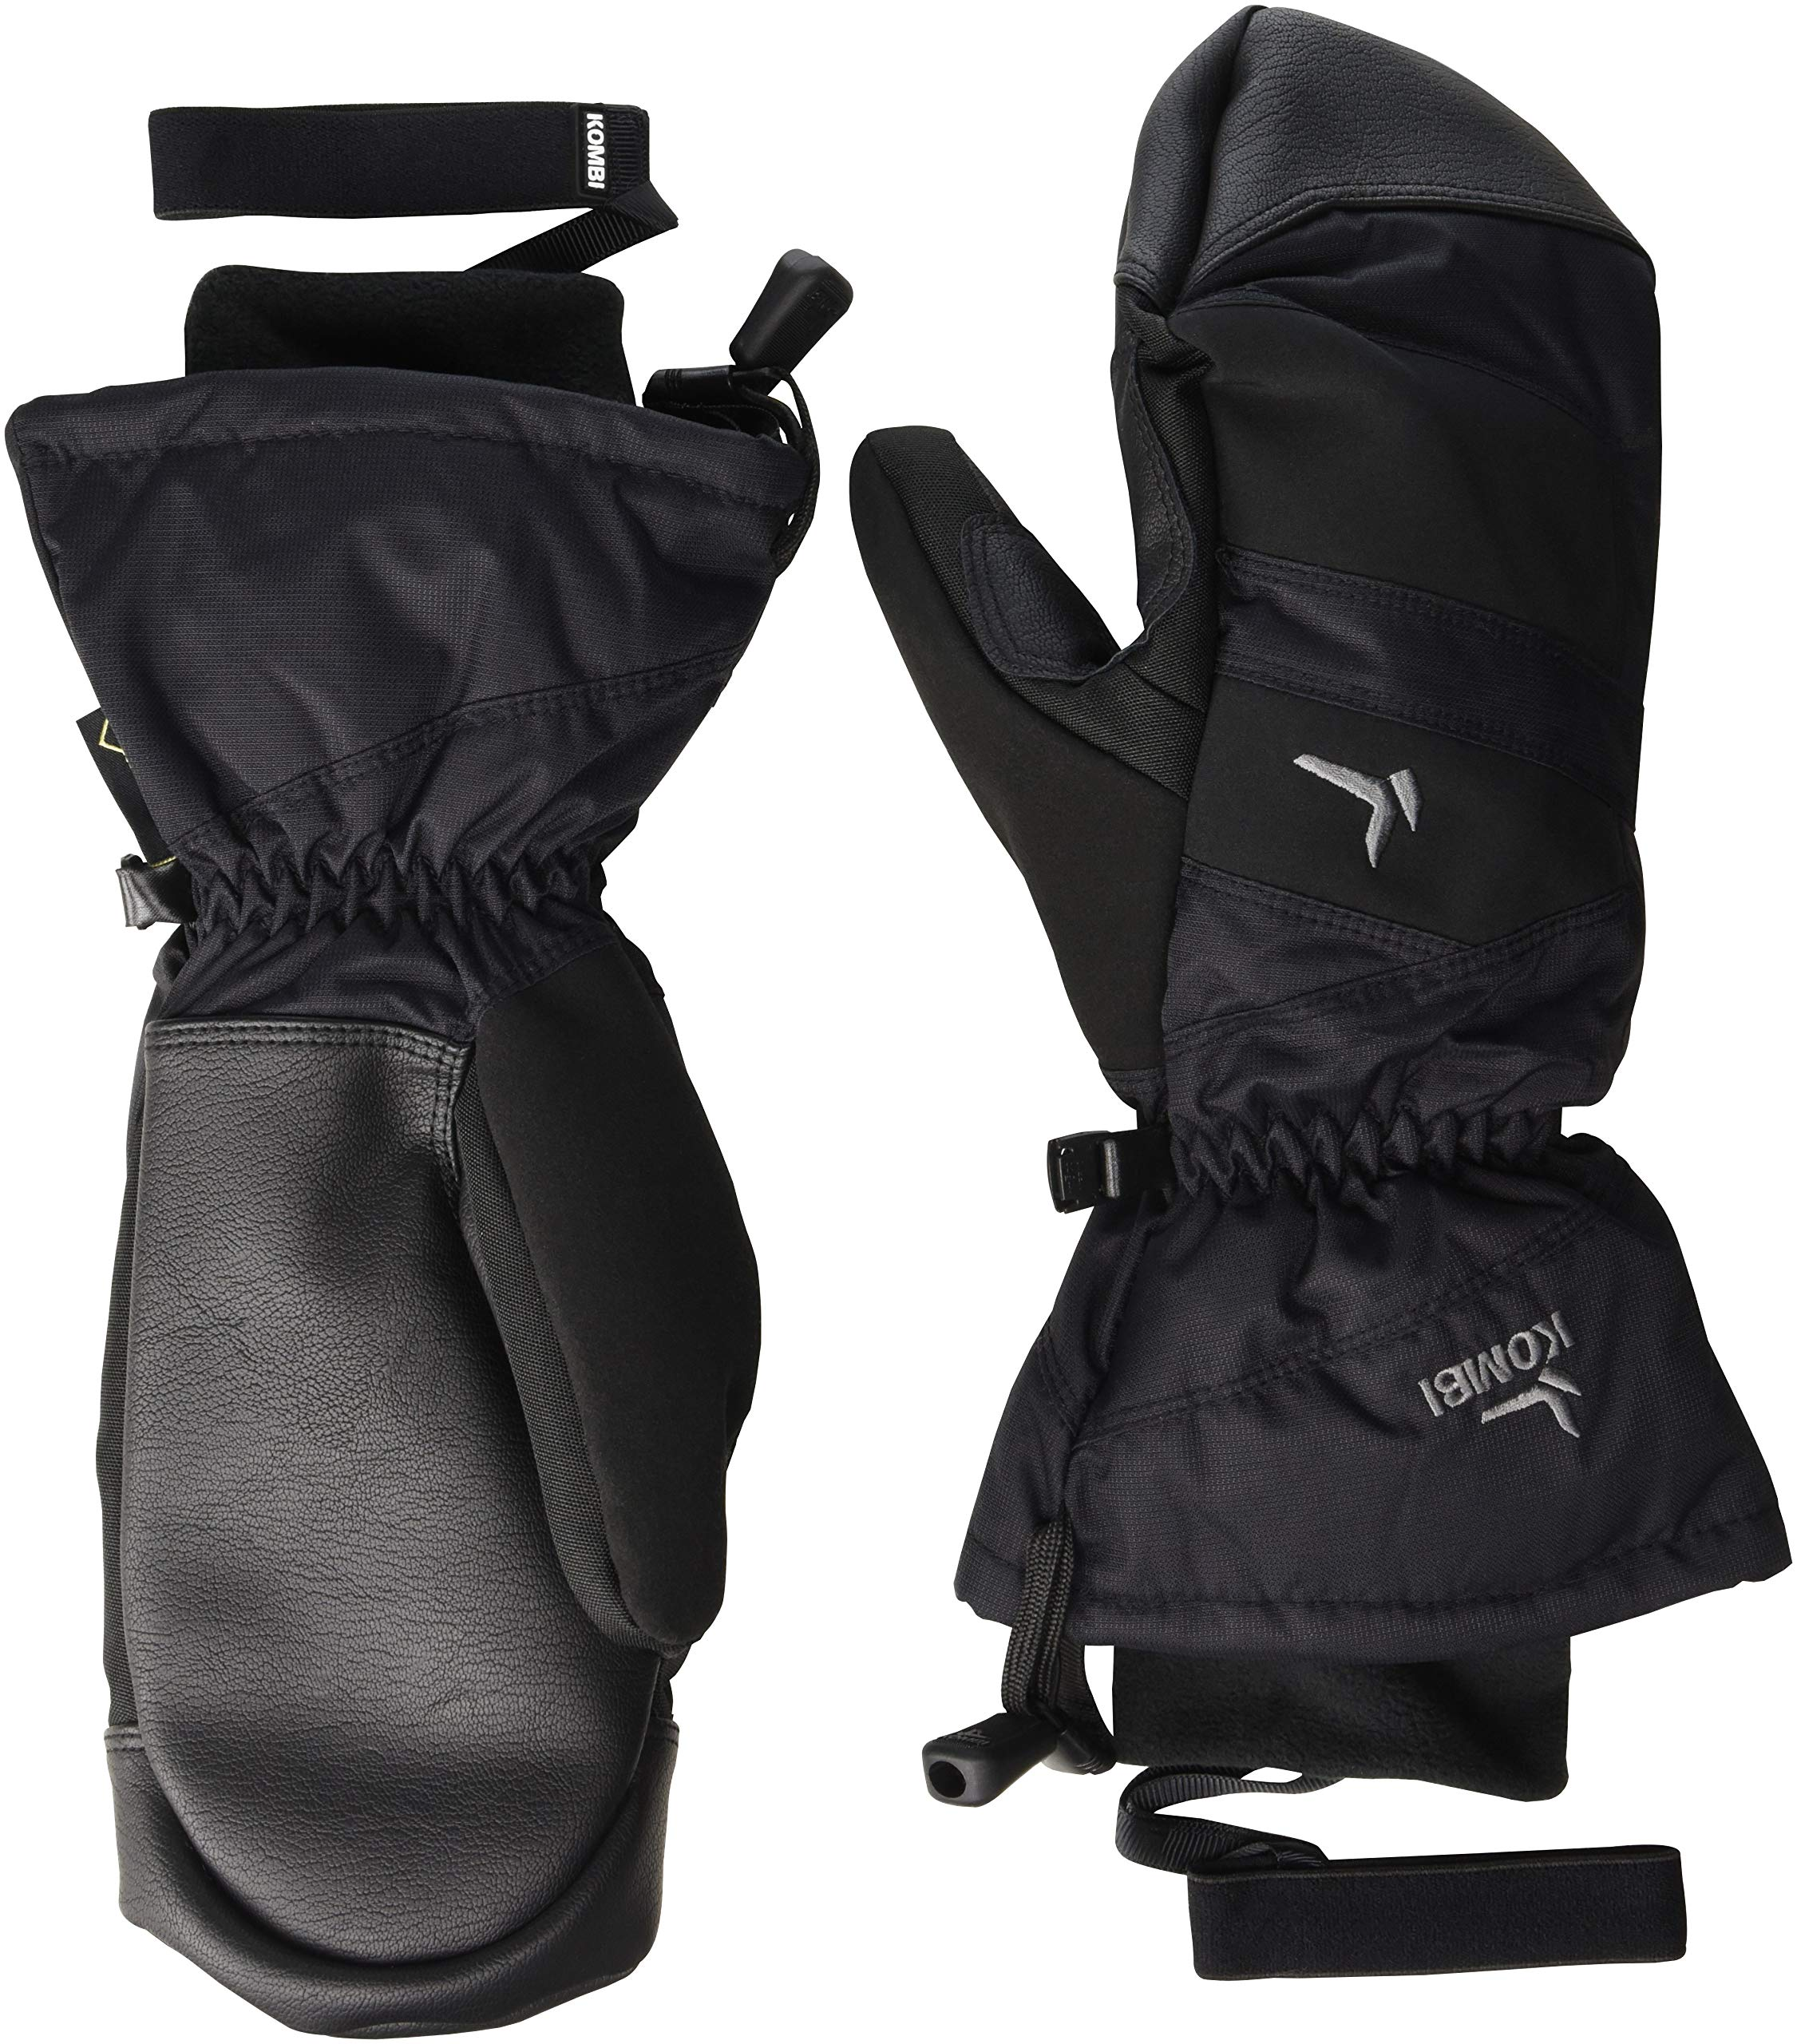 Kombi Women's Session Cold Weather Mittens, Large, Black